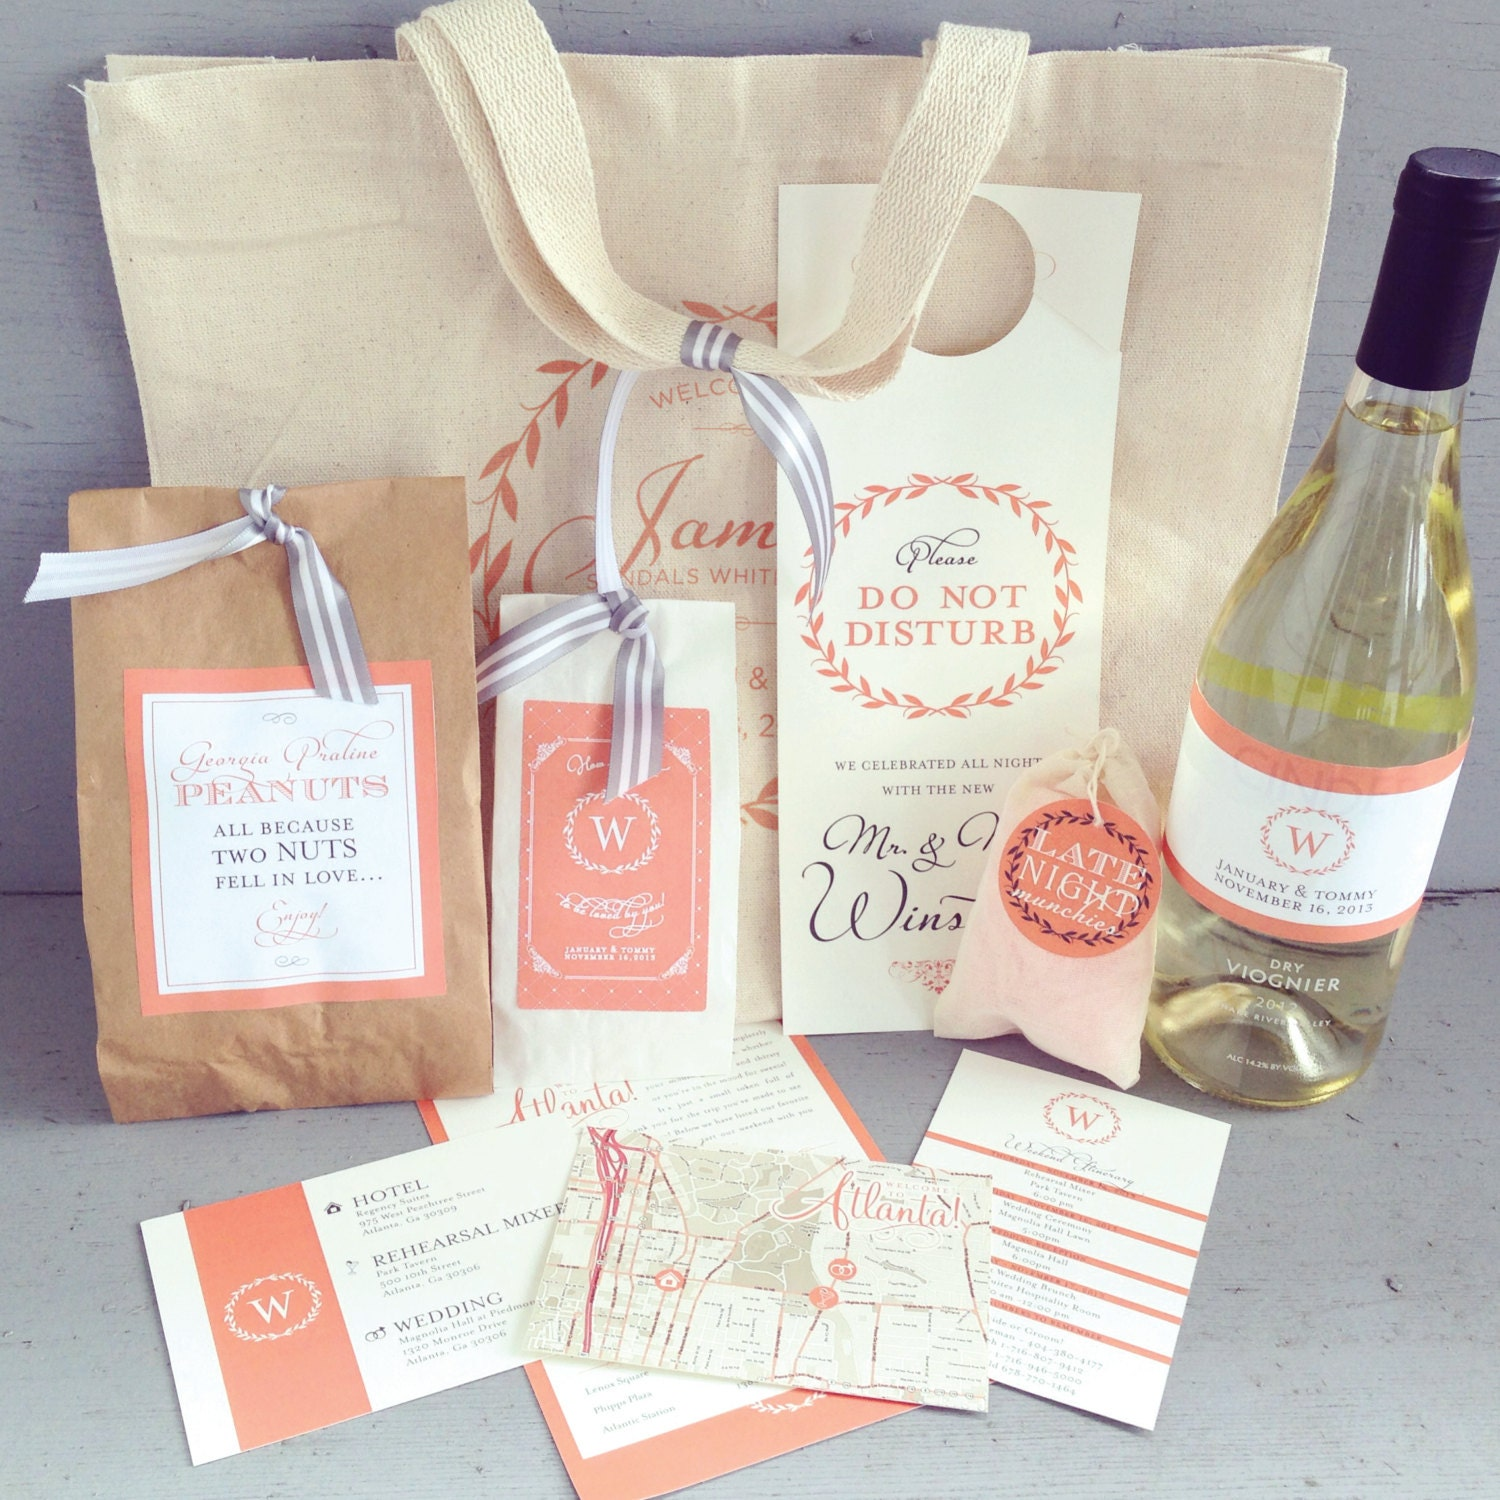 Wedding Fair Gift Bag Ideas : Newport, Rhode Island Wedding with True Event & Leila Brewster